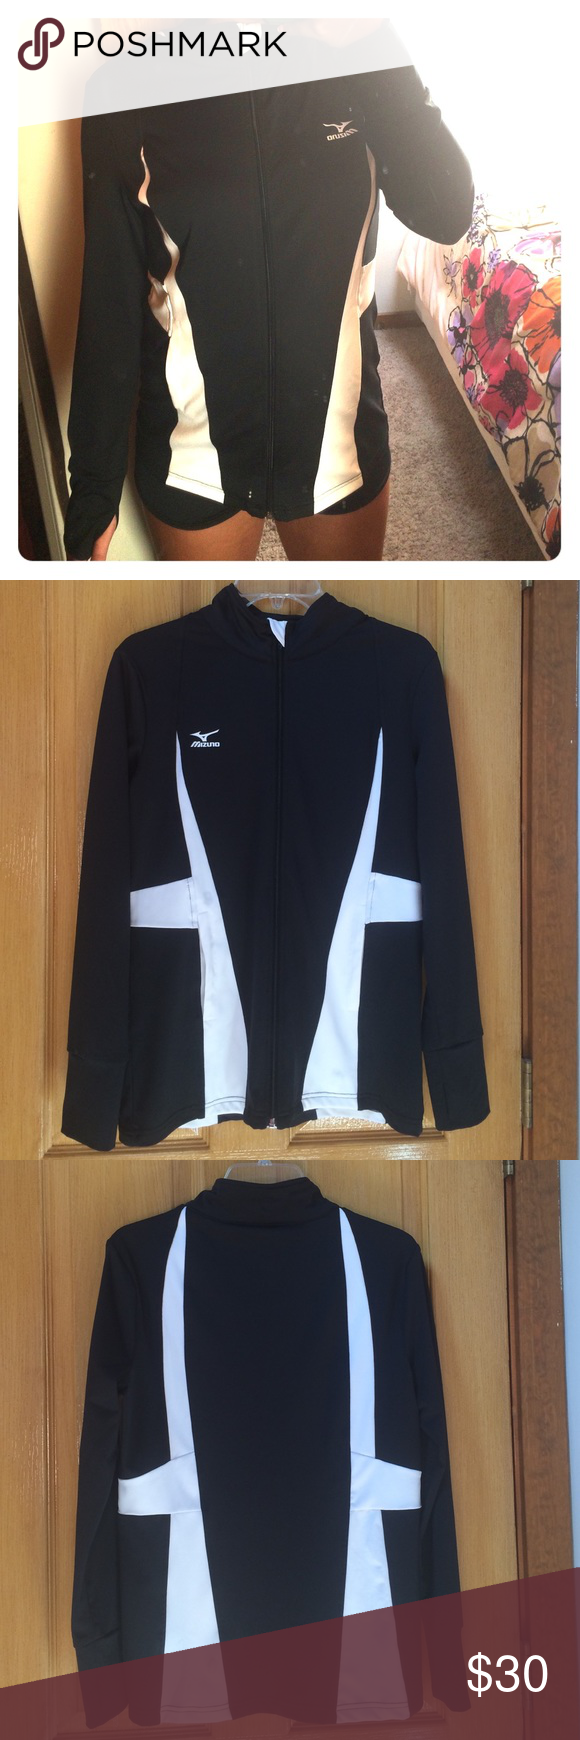 Mizuno Drylite Lightweight Performance Jacket Mizuno Drylite Lightweight Performance Full Zip Jacket With Thumb Holes Per Warmup Jacket Jackets Clothes Design